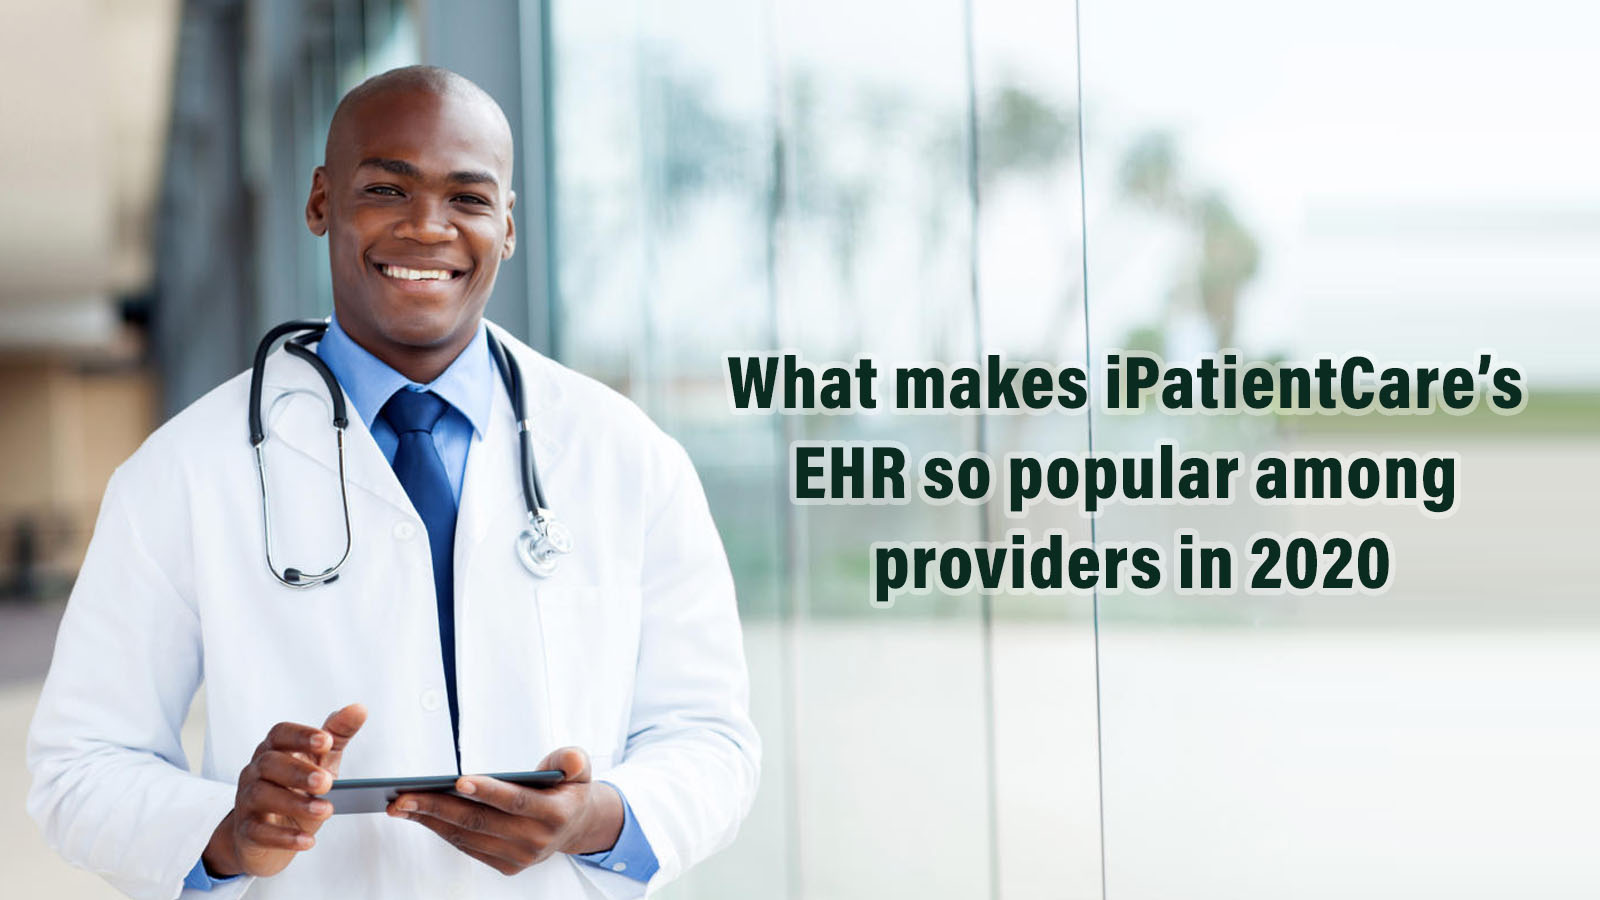 What makes iPatientCare's EHR so popular among providers in 2020